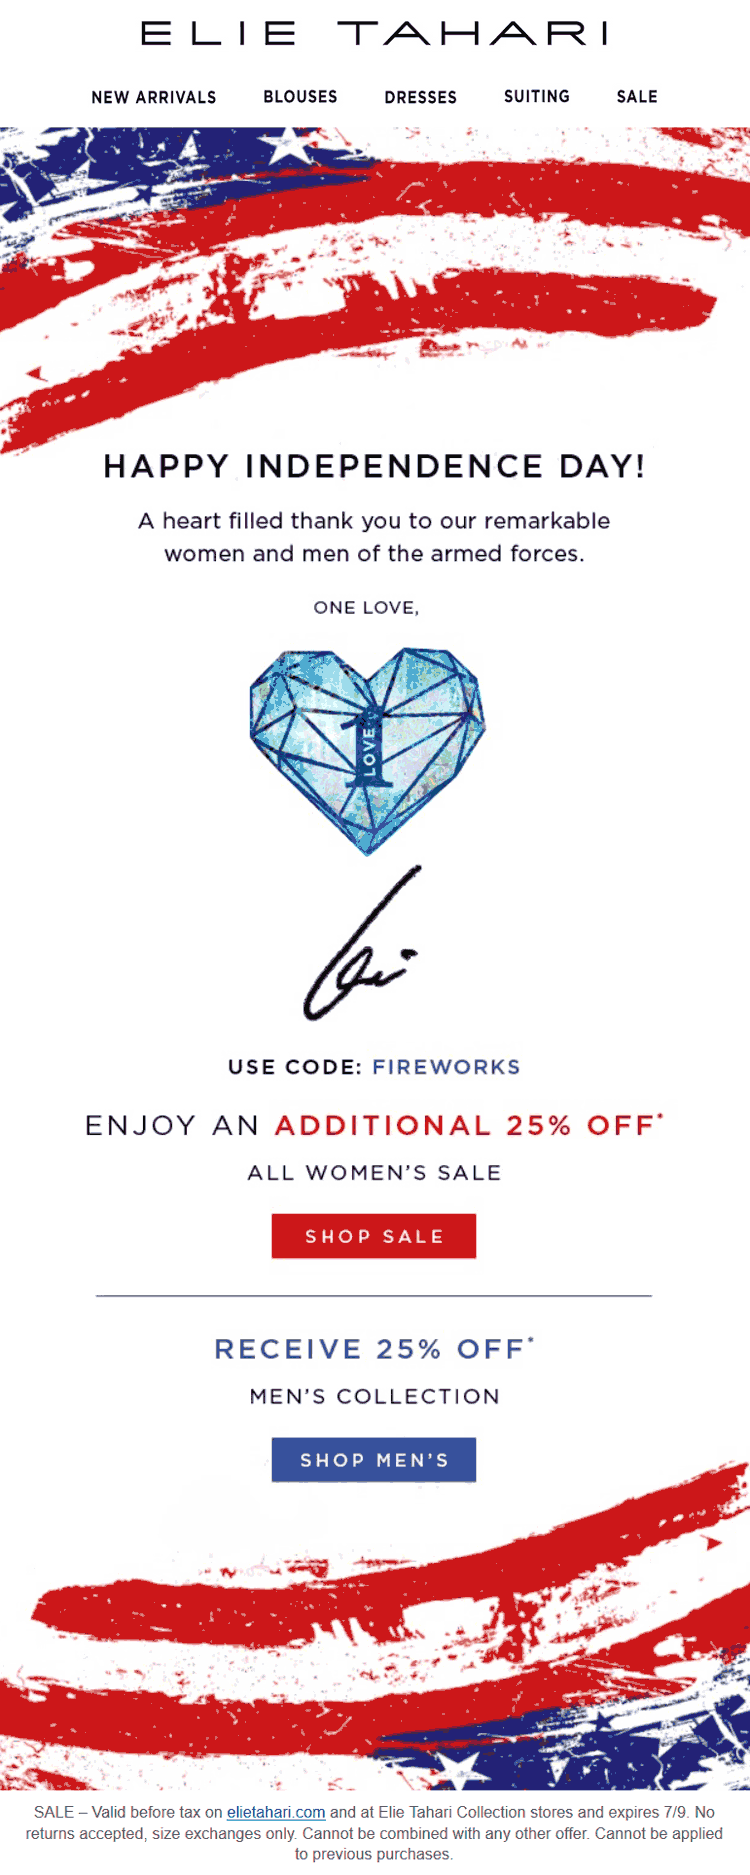 Elie Tahari Coupon August 2018 Extra 25% off sale items at Elie Tahari, or online via promo code FIREWORKS